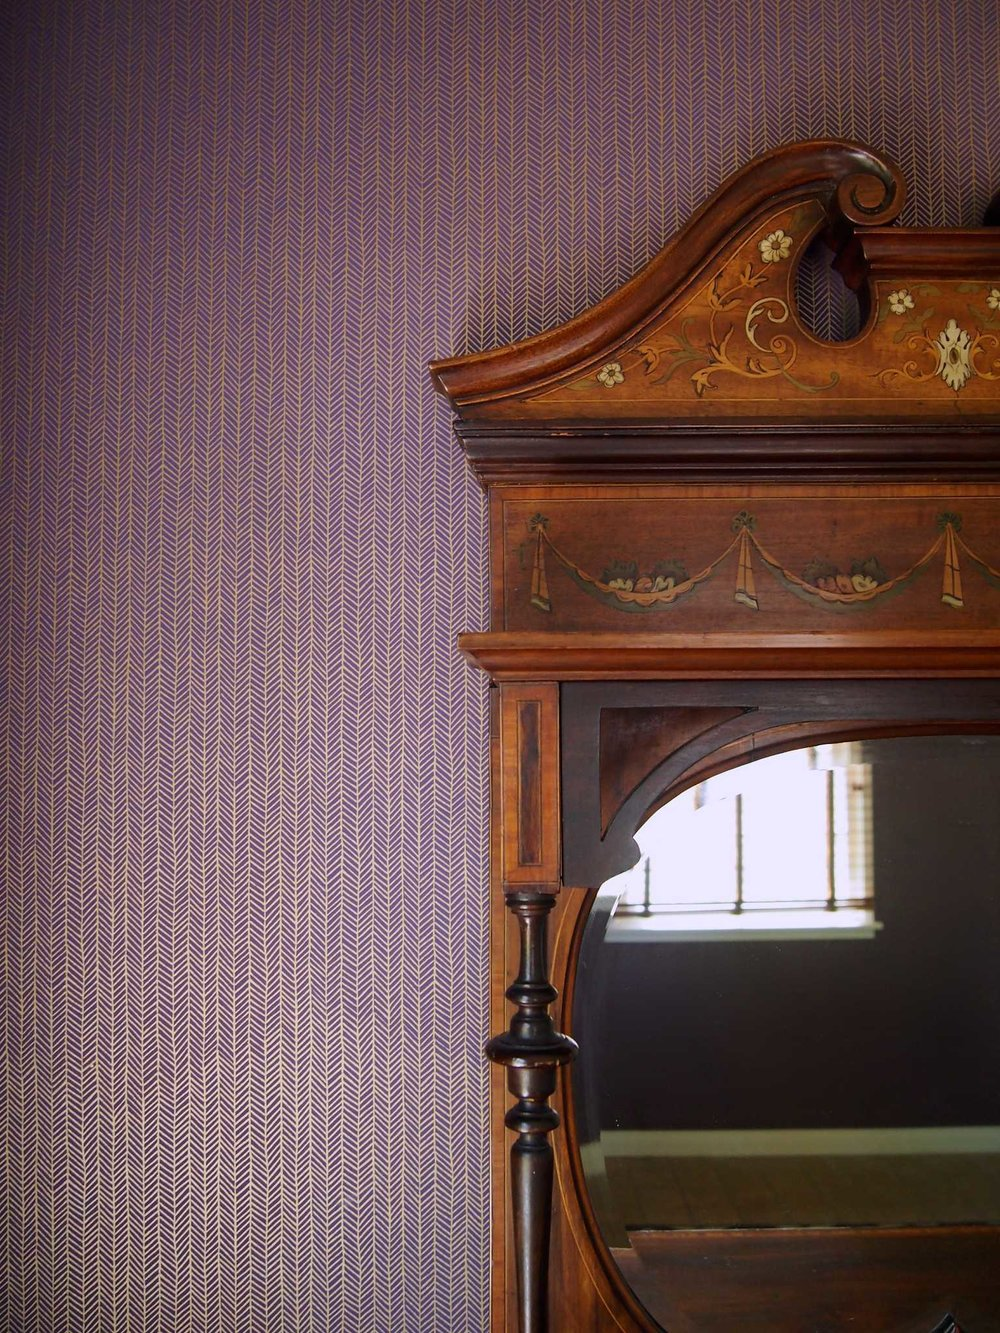 Herringbone Wallpaper in Amethyst, Photo by Benjamin Hoffman